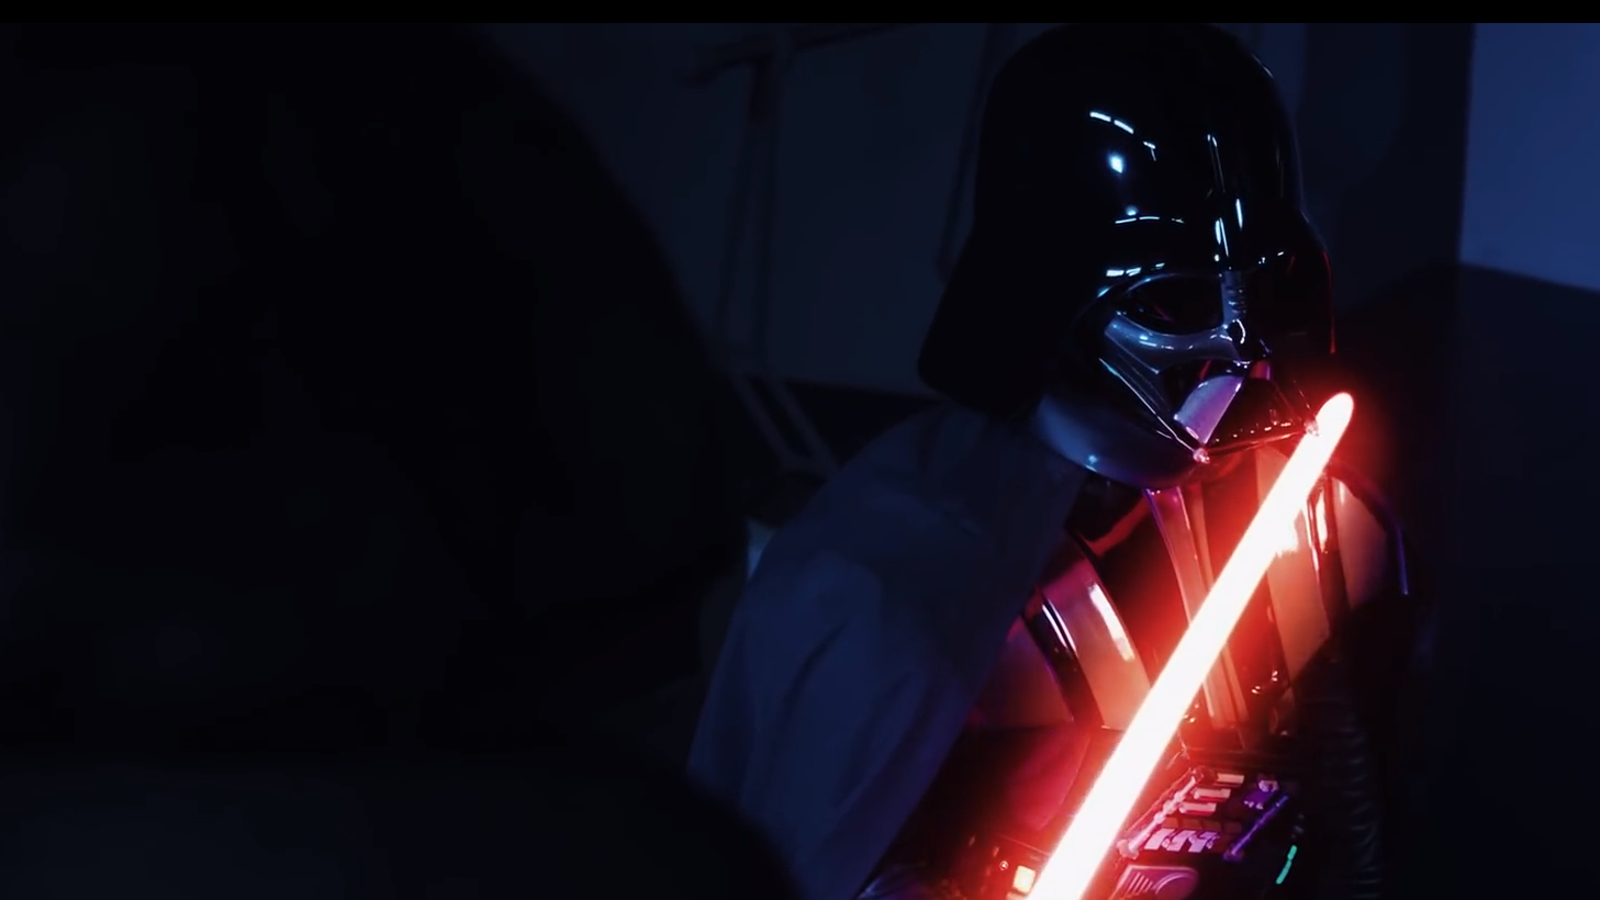 This Dark Star Wars Fan Film Perfectly Captures the Feel of Darth Vader's World